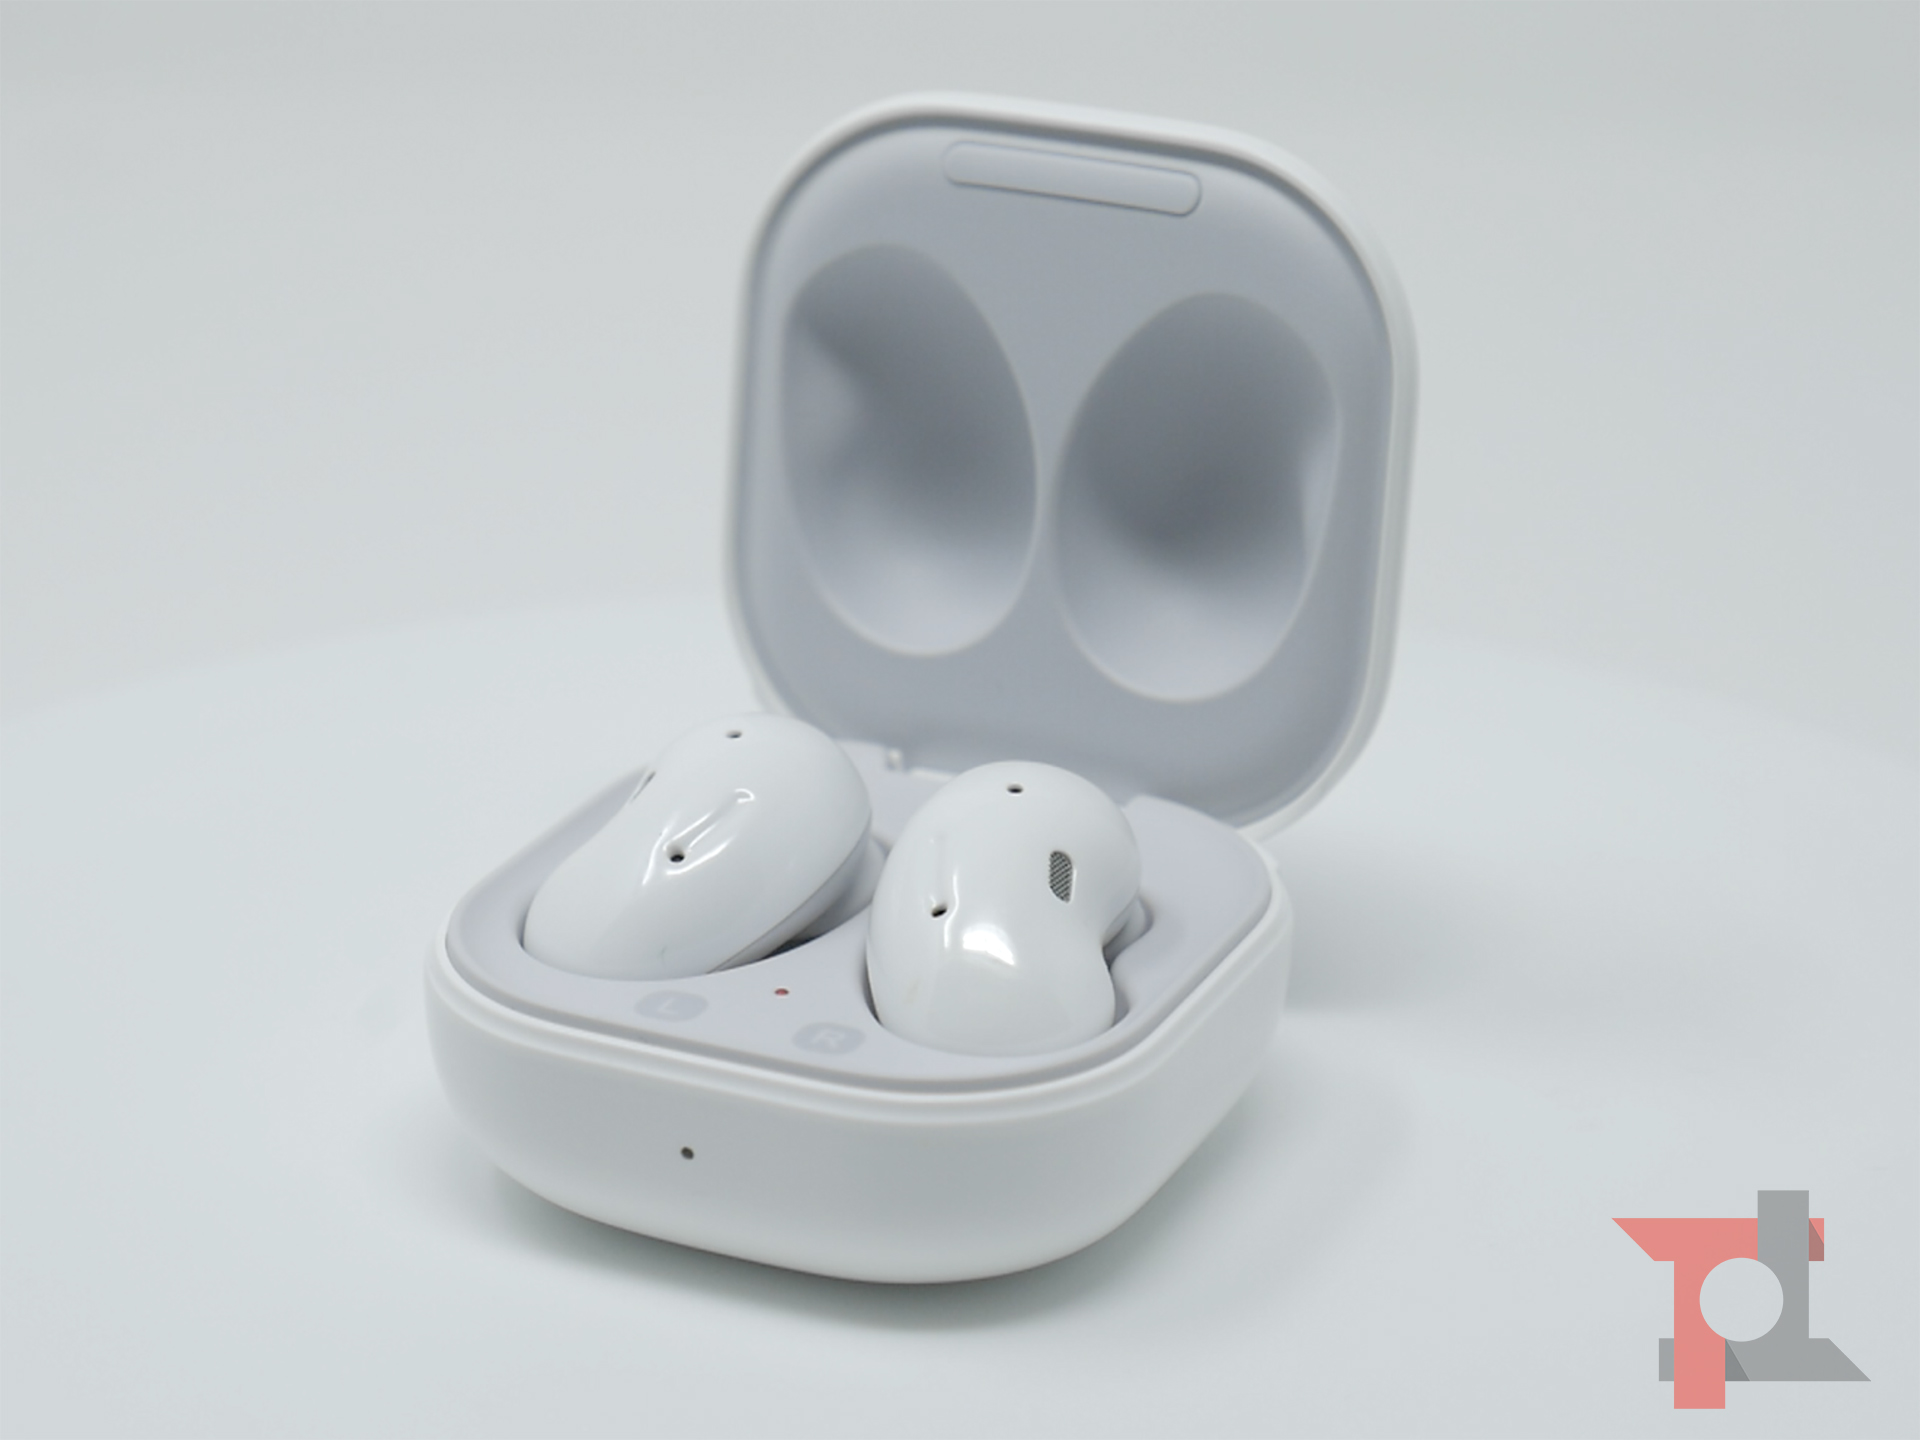 Recensione Samsung Galaxy Buds Live: design open-type promosso 2